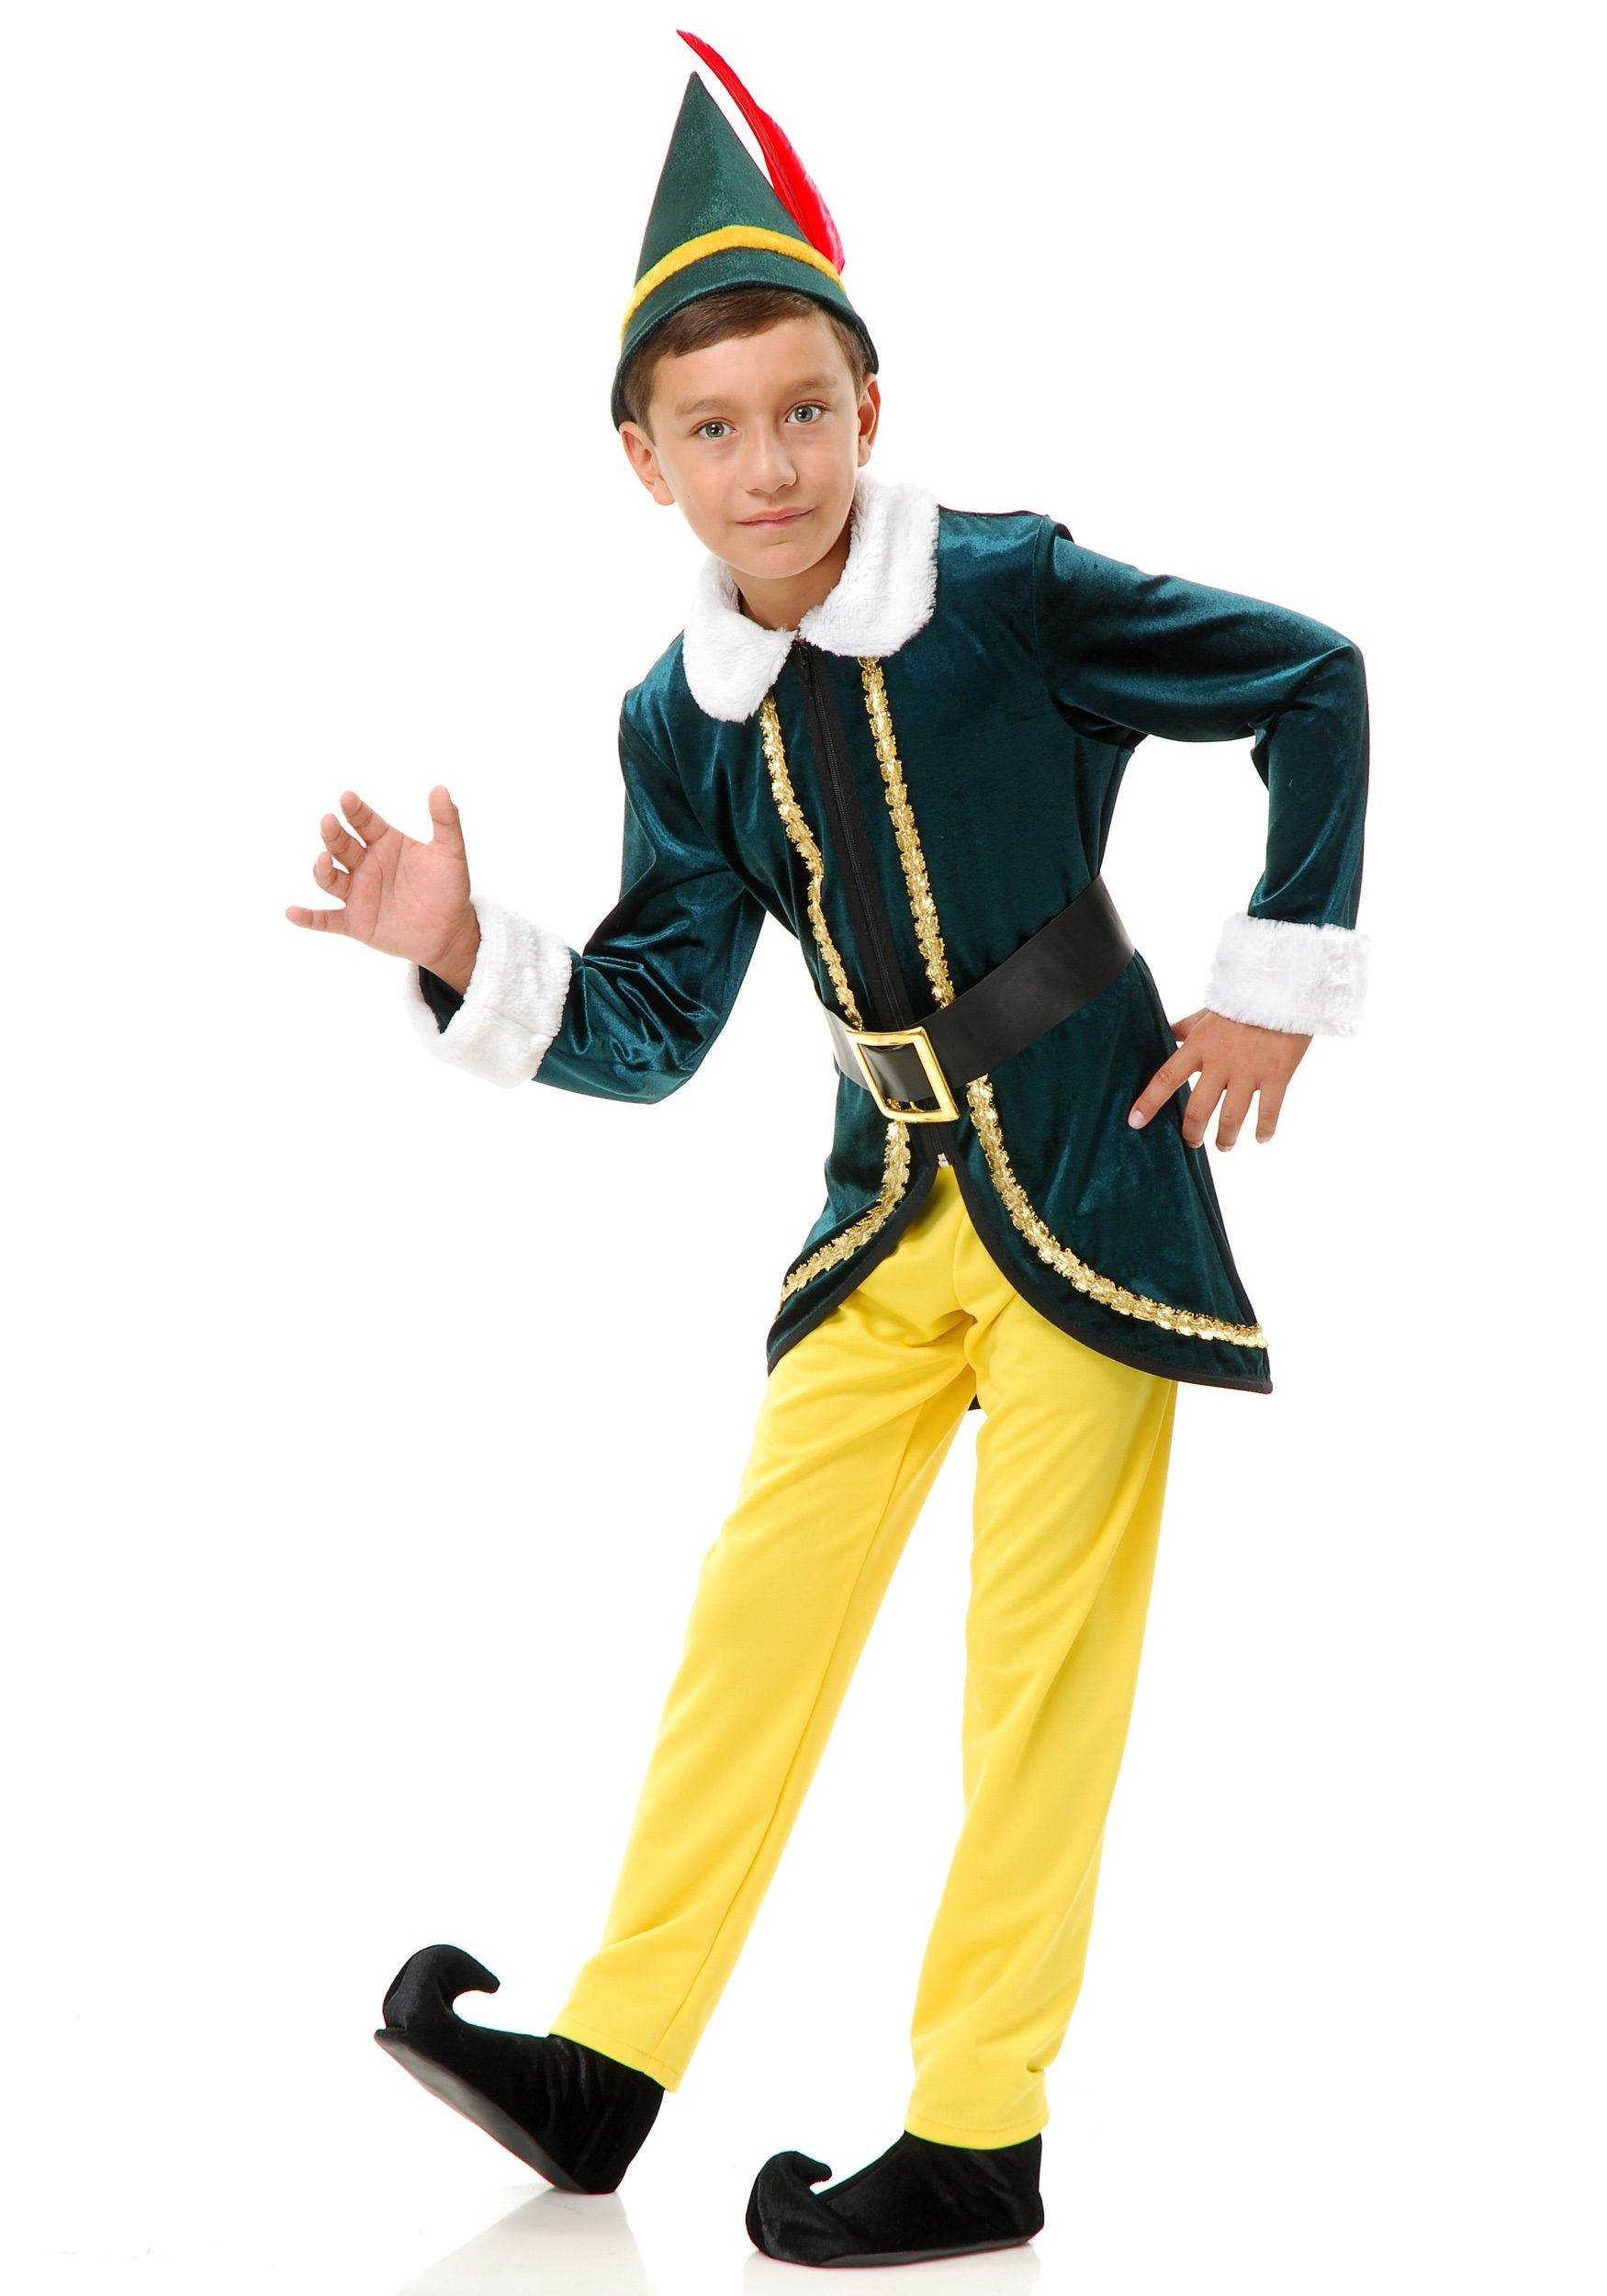 Top Sellers Tween Crayola Gold Crayon Costume - Halloween Costumes Kids Costumes - This Tween Gold Crayola Costume Dress includes the gold and black crayon ...  sc 1 st  Pinterest & Related image | Costume designs | Pinterest | Boys elf costume ...